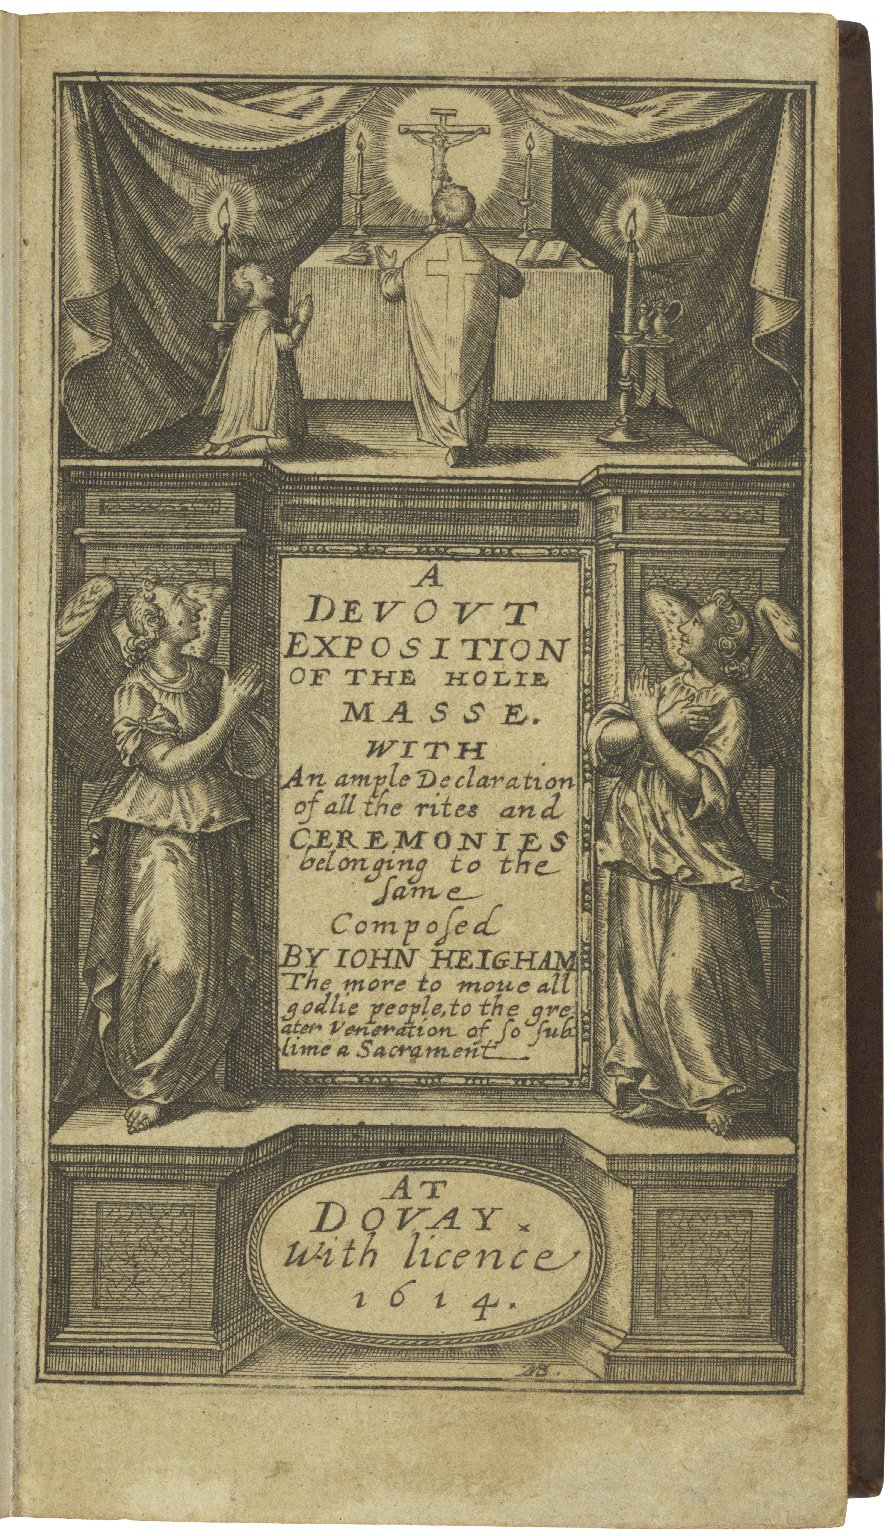 A devout exposition of the holie masse. With an ample declaration of all the rites and ceremonies belonging to the same composed by Iohn Heigham the more to moue all godlie people, to the greater veneration of so sublime a sacrament.